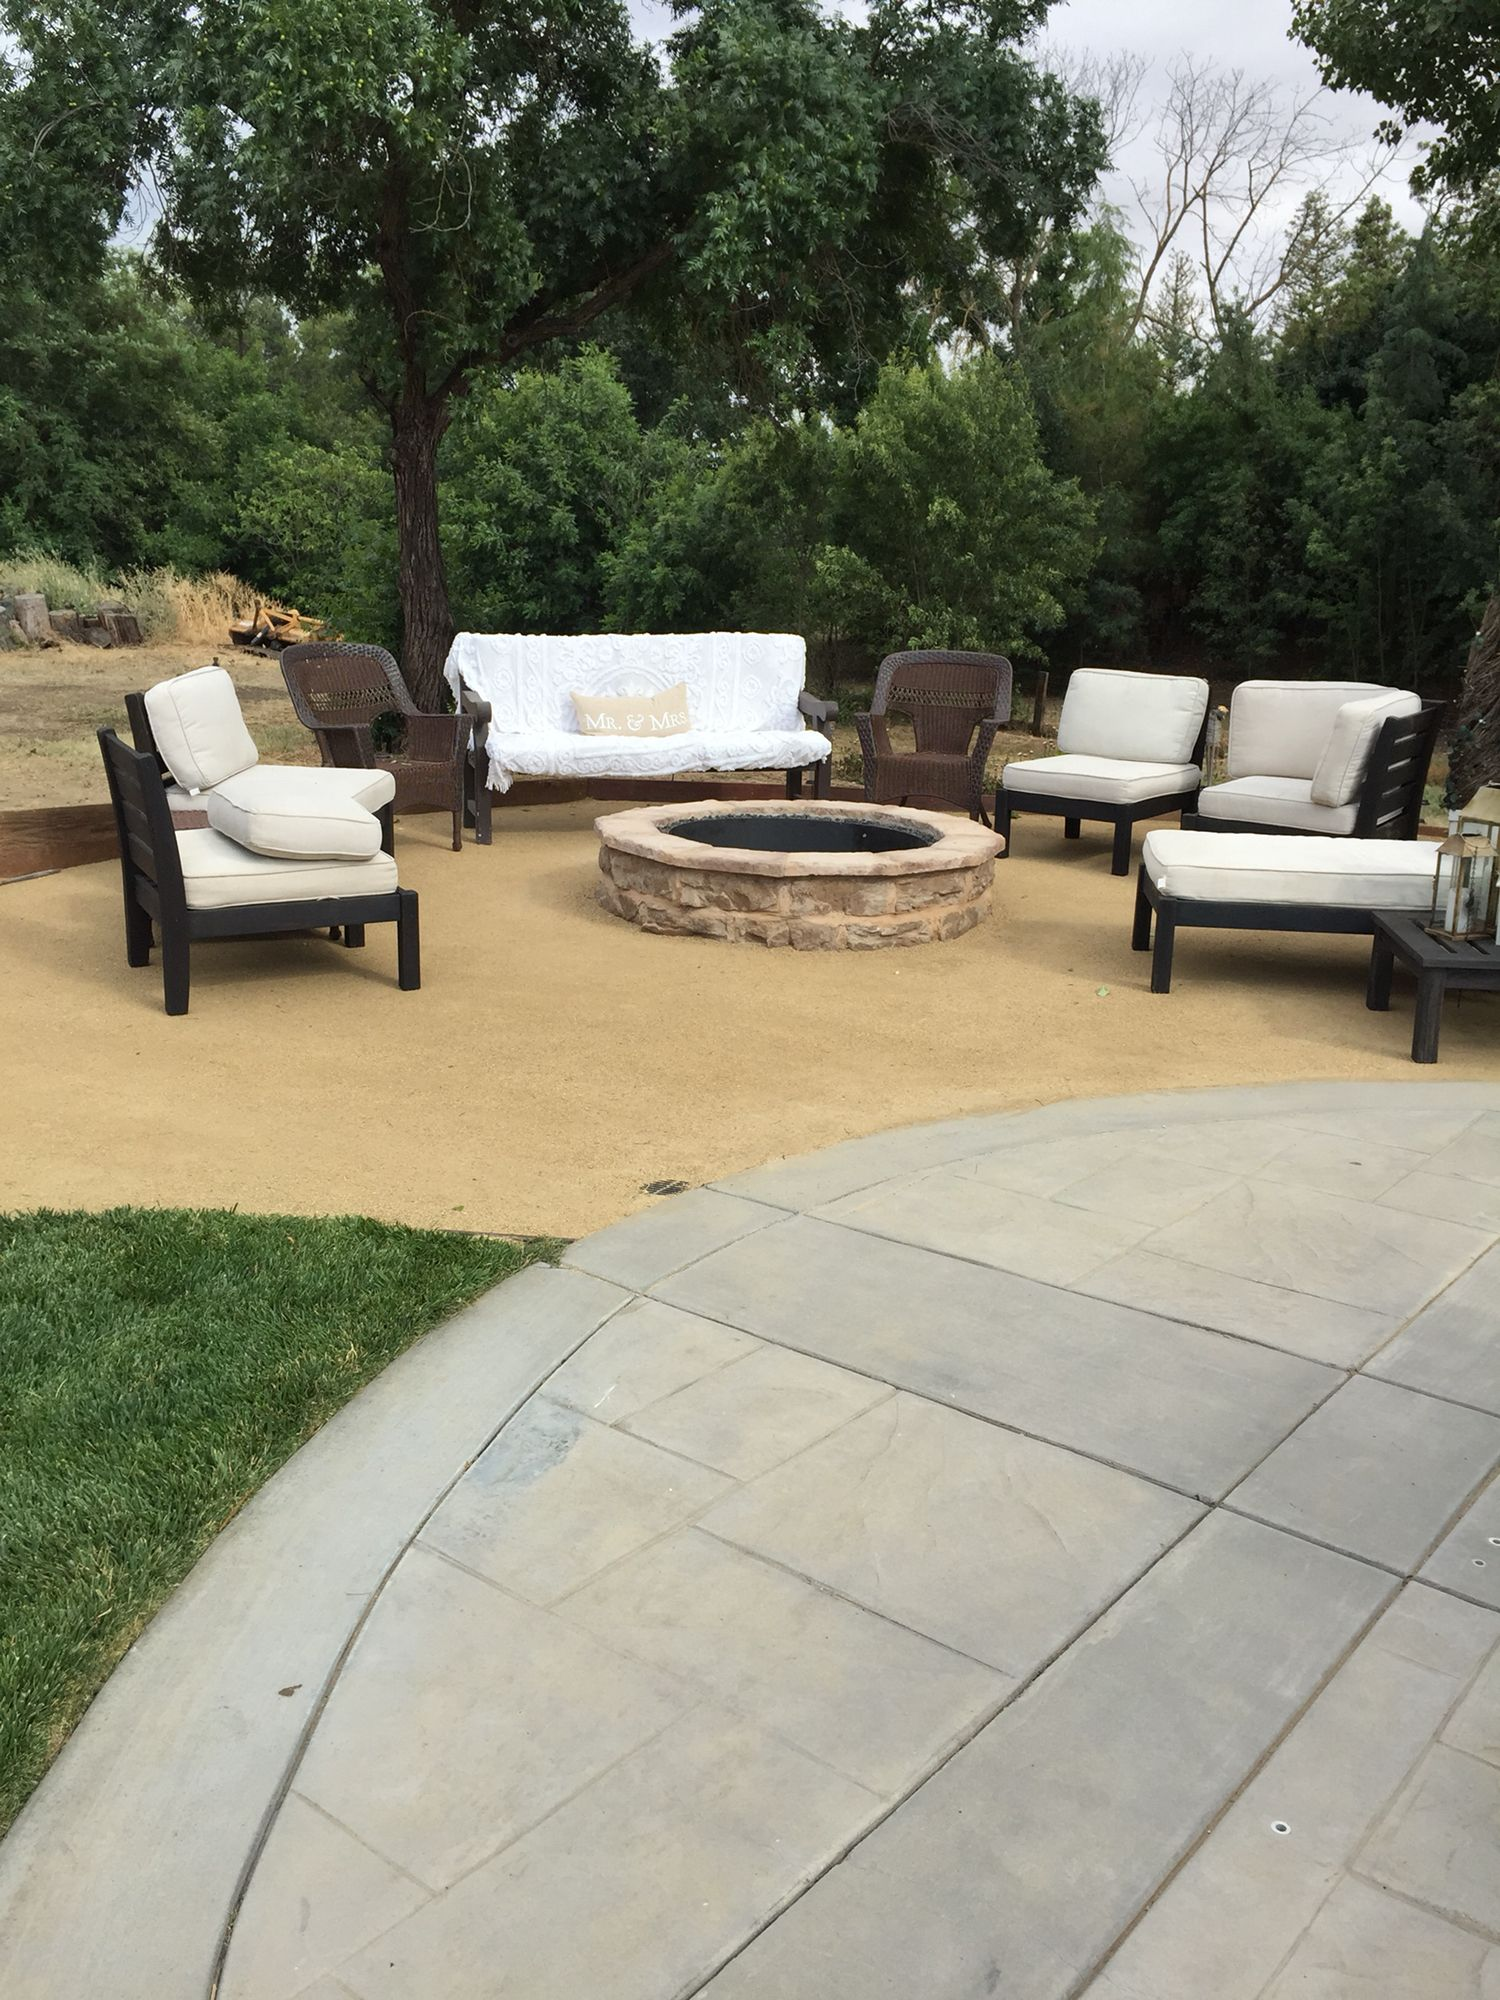 51230d3386525cafdbf175a3b86337f6 Top Result 50 Awesome Cost Of Outdoor Fireplace Picture 2018 Zat3